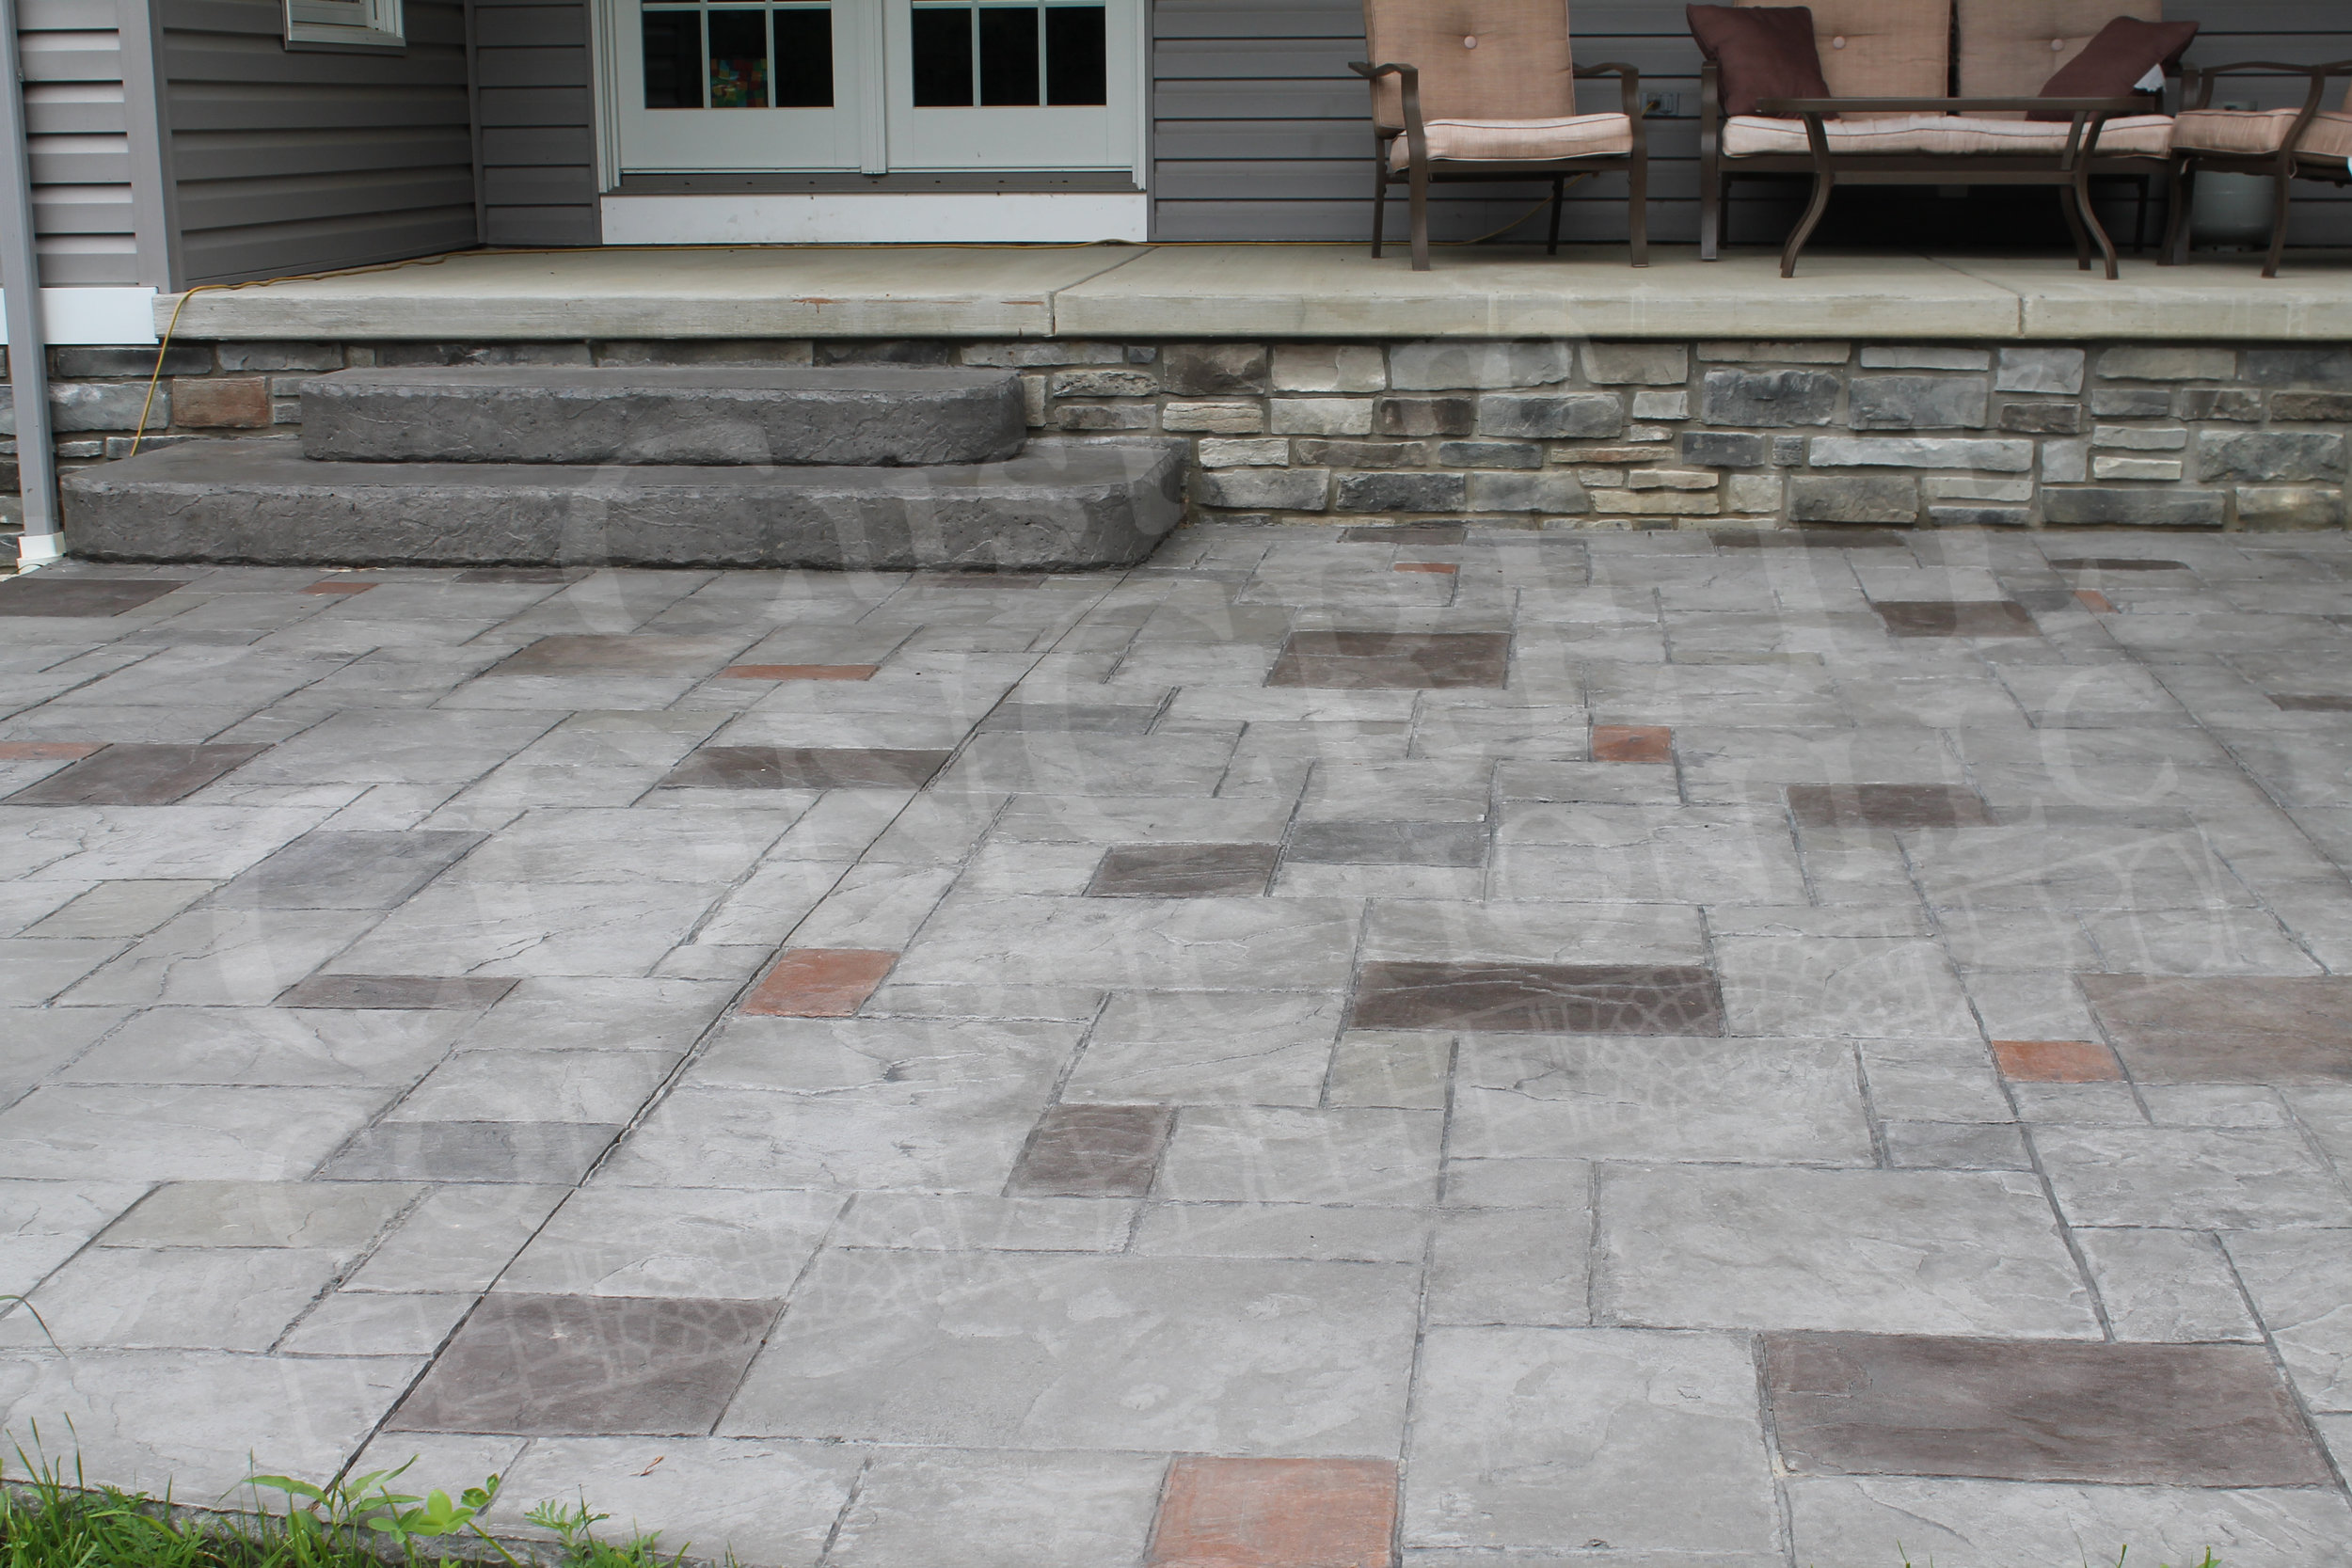 ashlar stamped patio, steps with textured rock faces, and individual hand-staining work